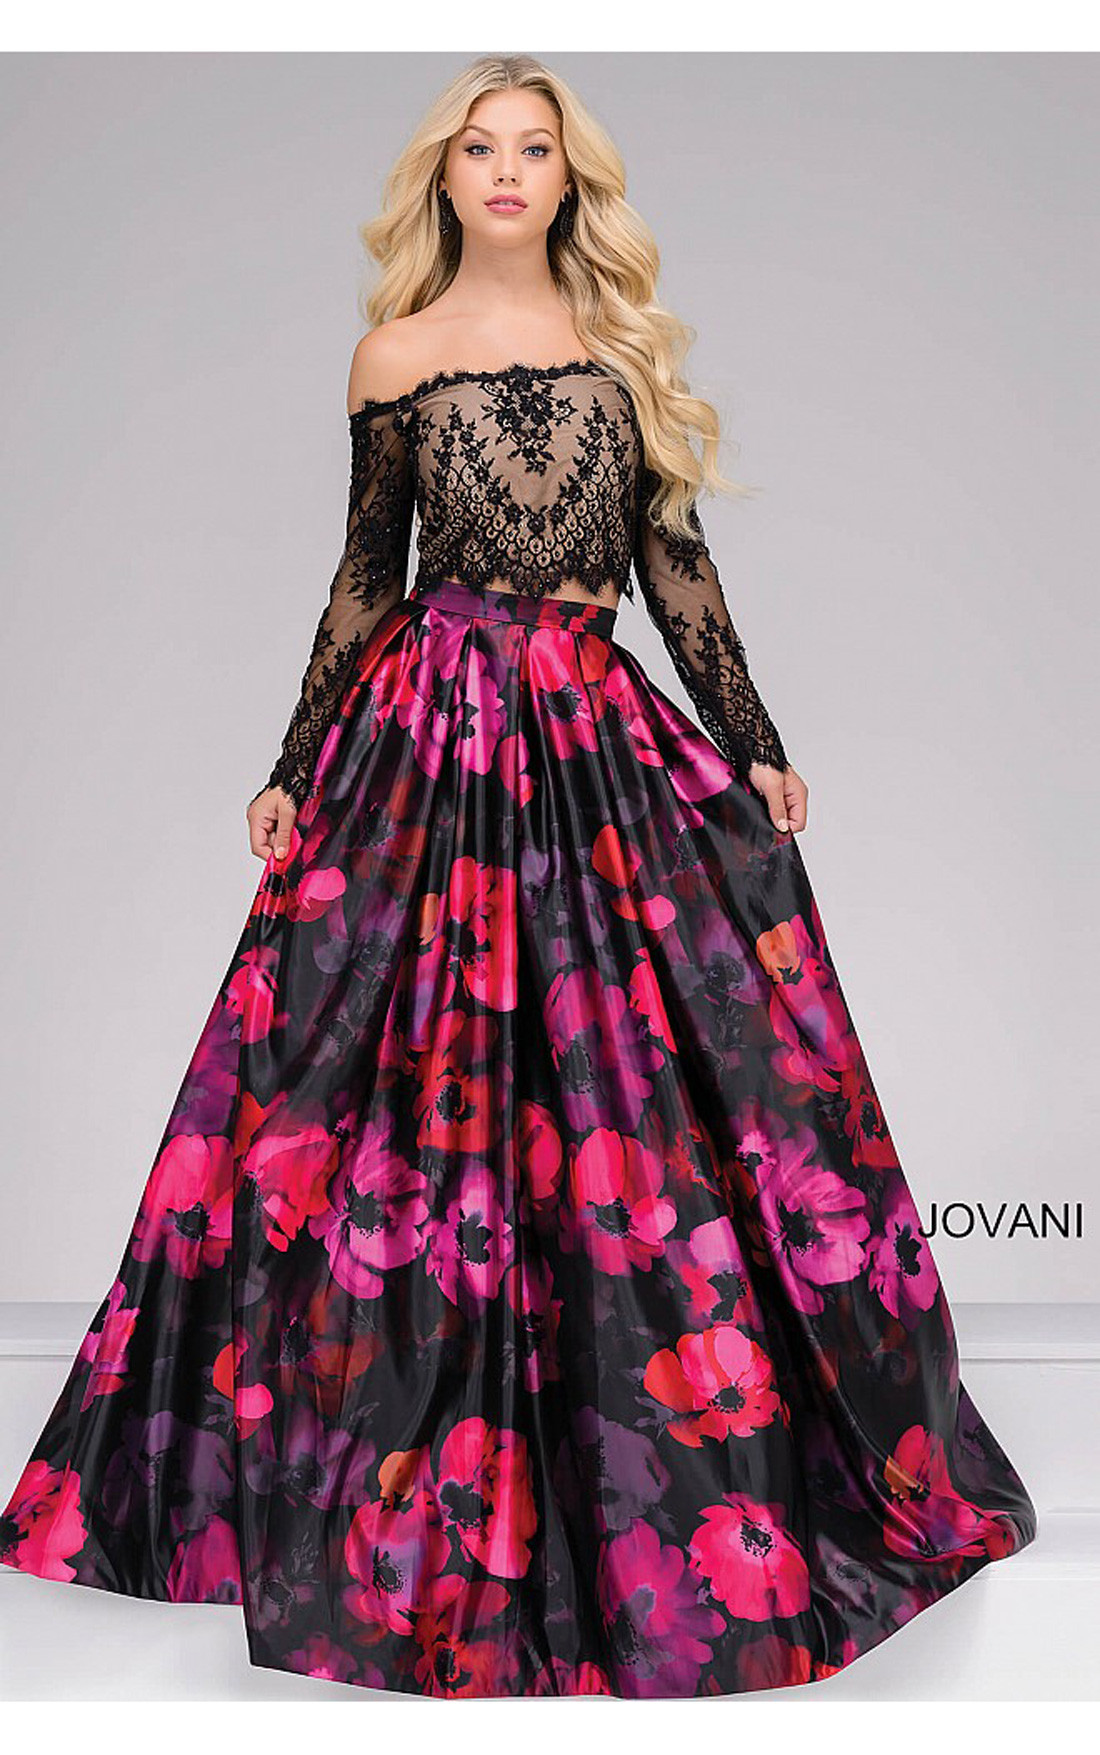 Jovani - Black and Multi Floral Print Two-Piece Long sleeve Ballgown (48690)